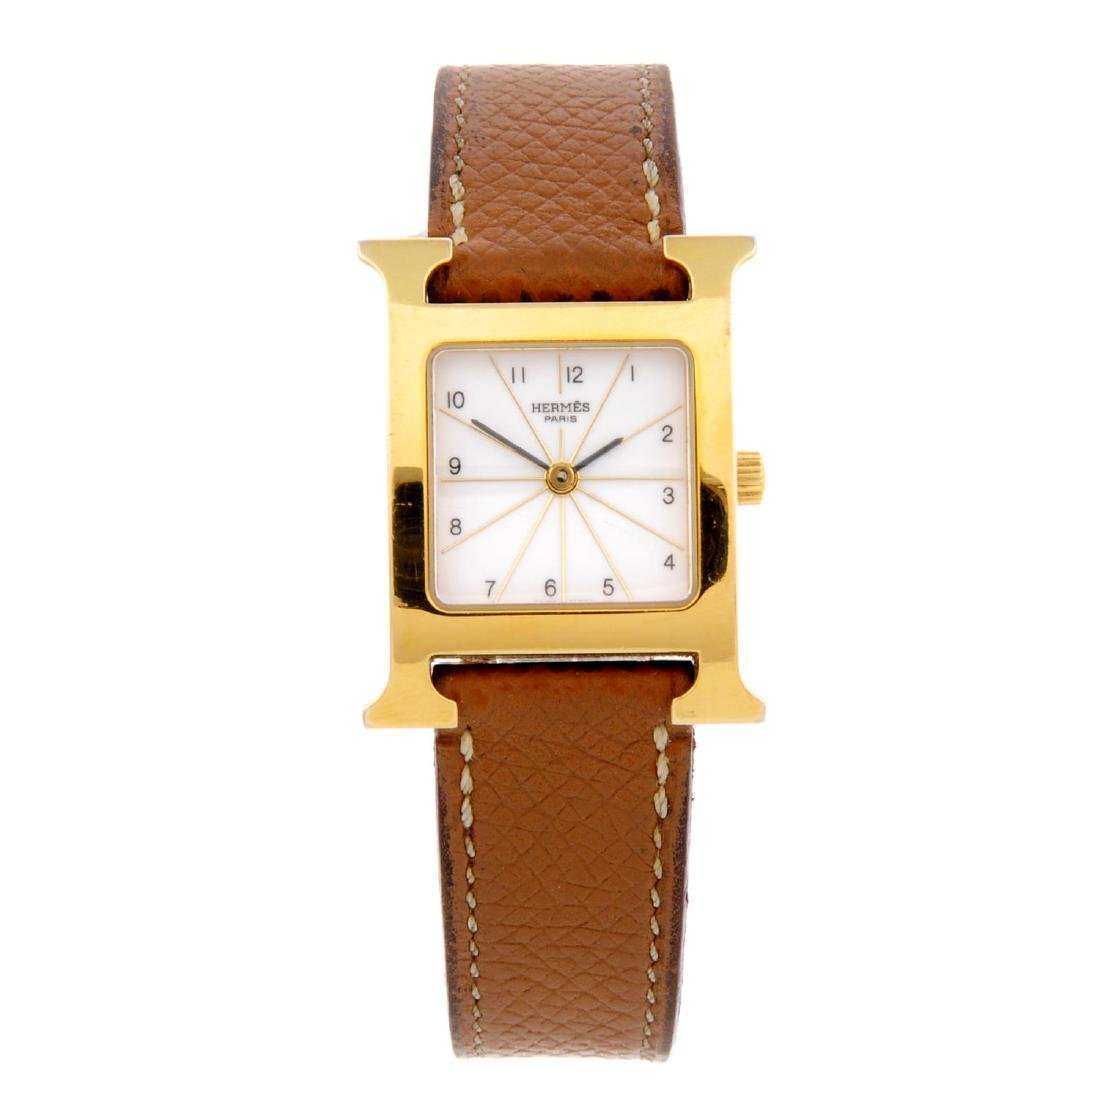 HERMÈS - a lady's Heure H wrist watch. Gold plated